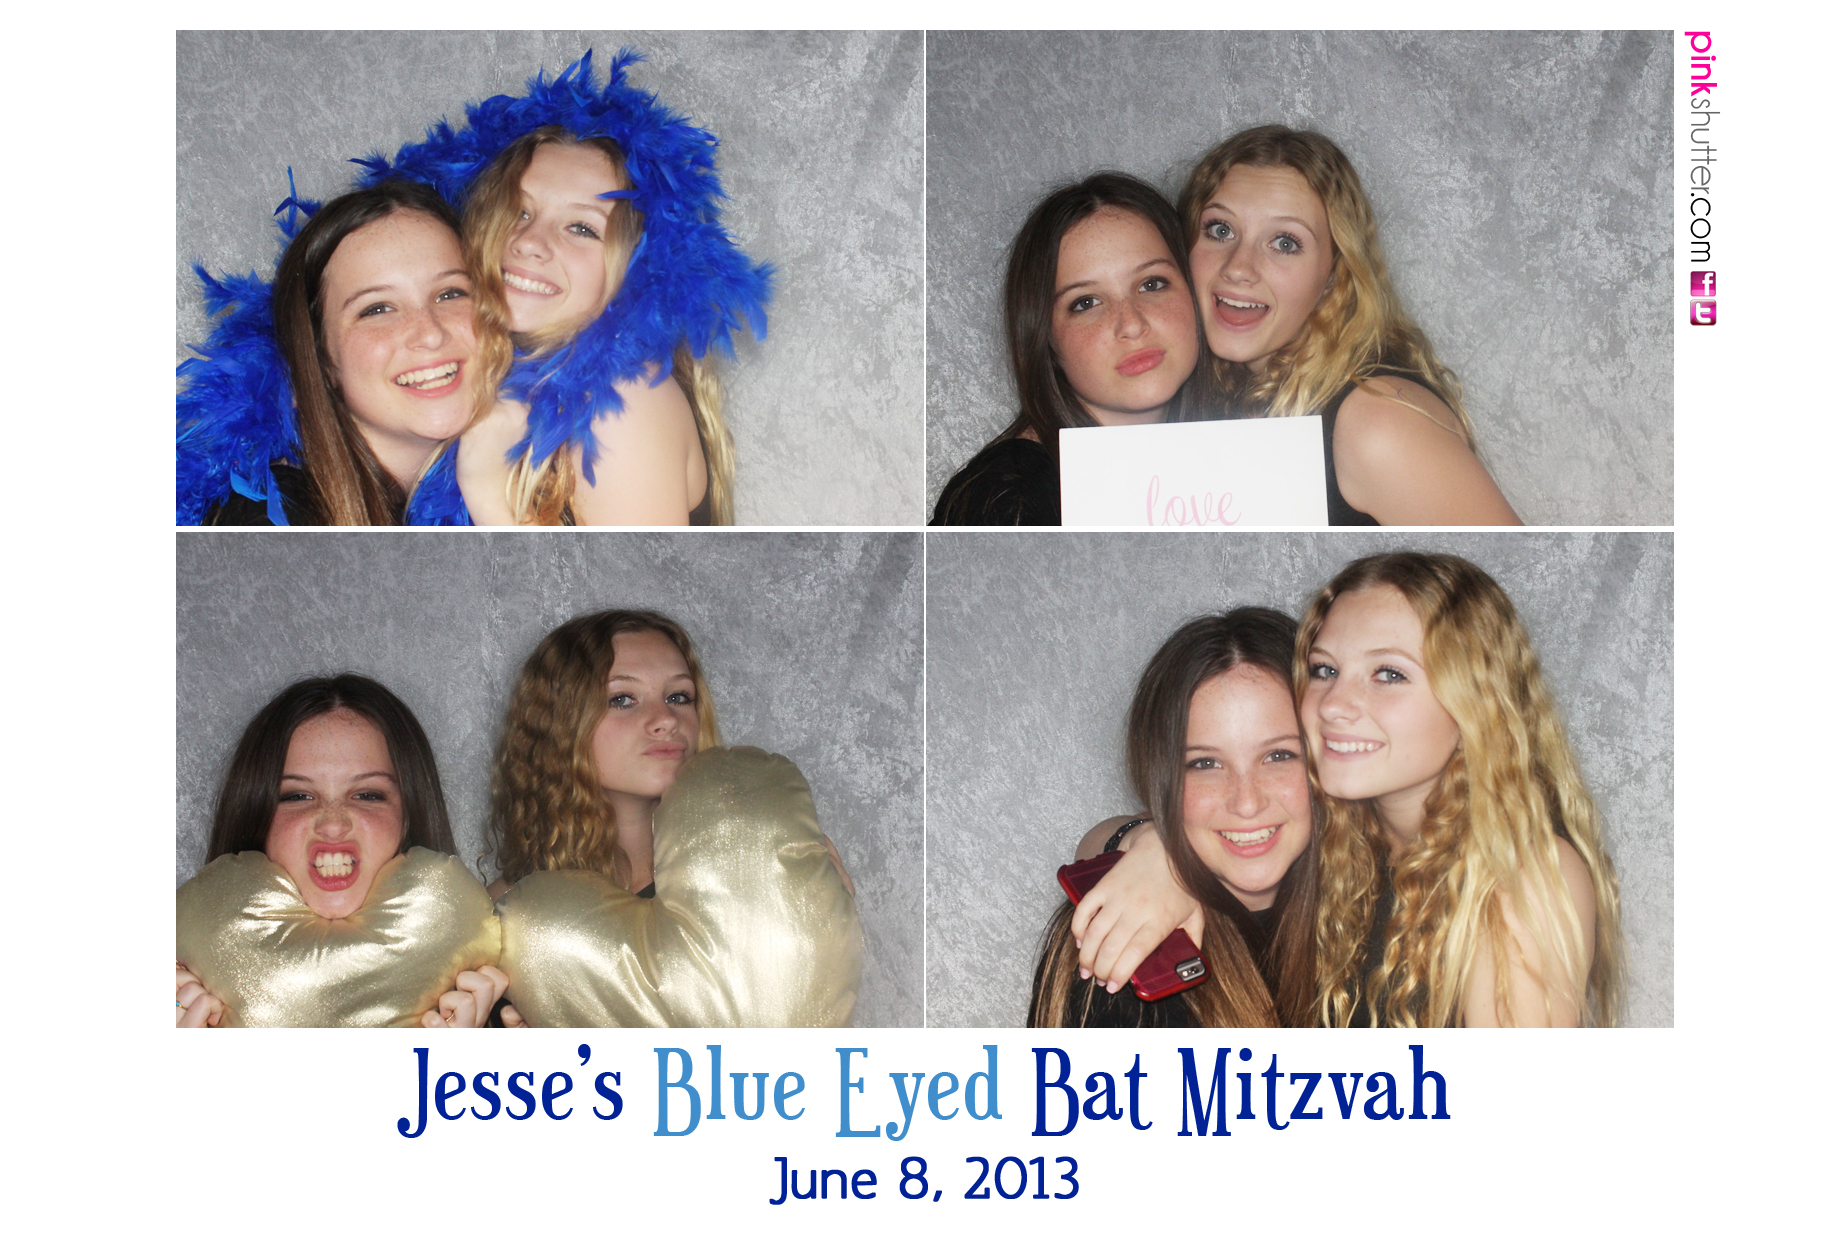 Jesse's Blue Eyed Bat Mitzvah | June 8, 2013